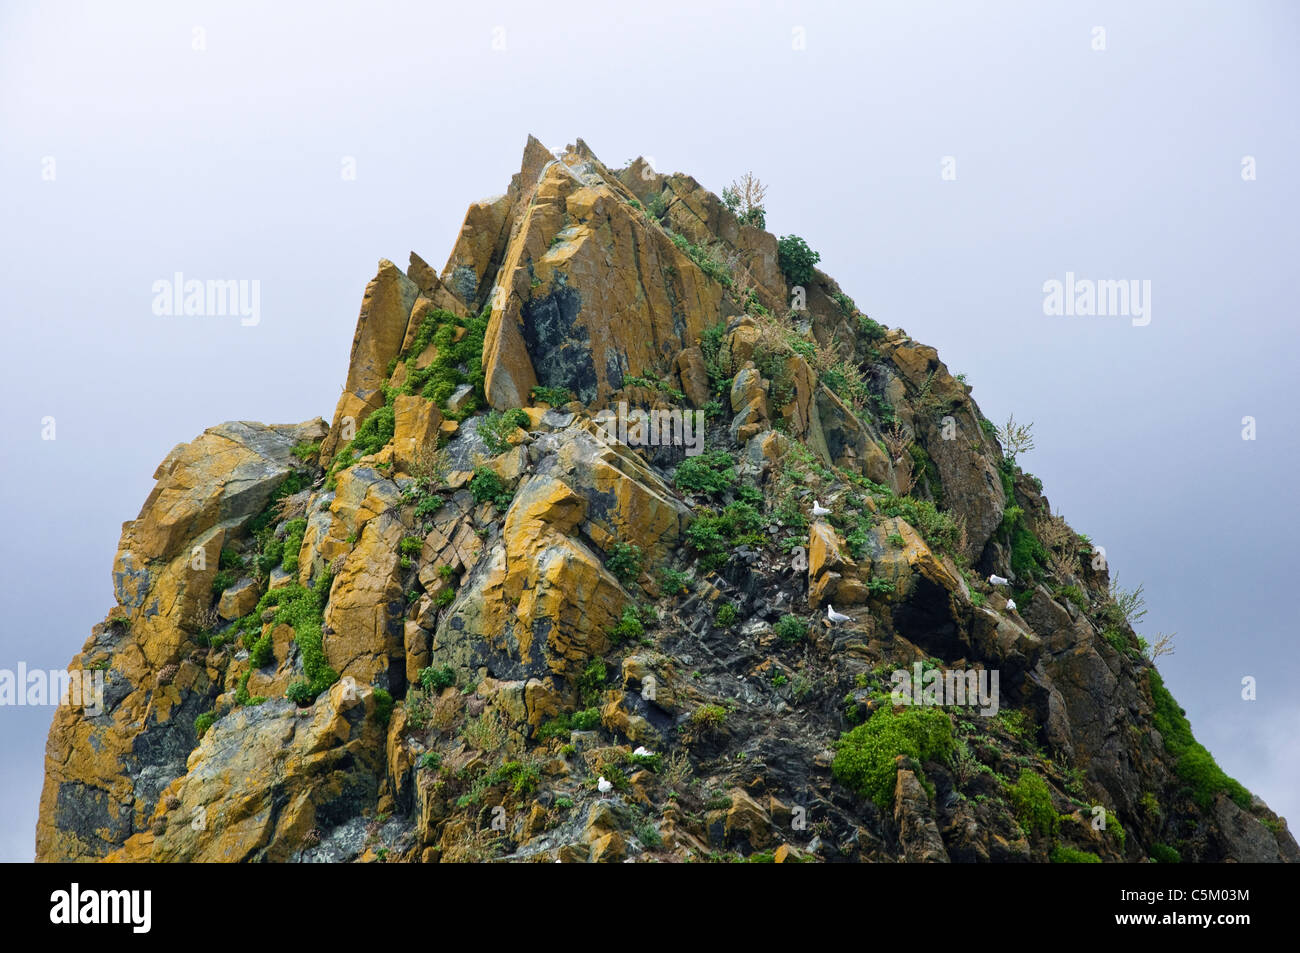 Pinnacle of a rock - with jagged points, vegetation and gulls. UK. - Stock Image